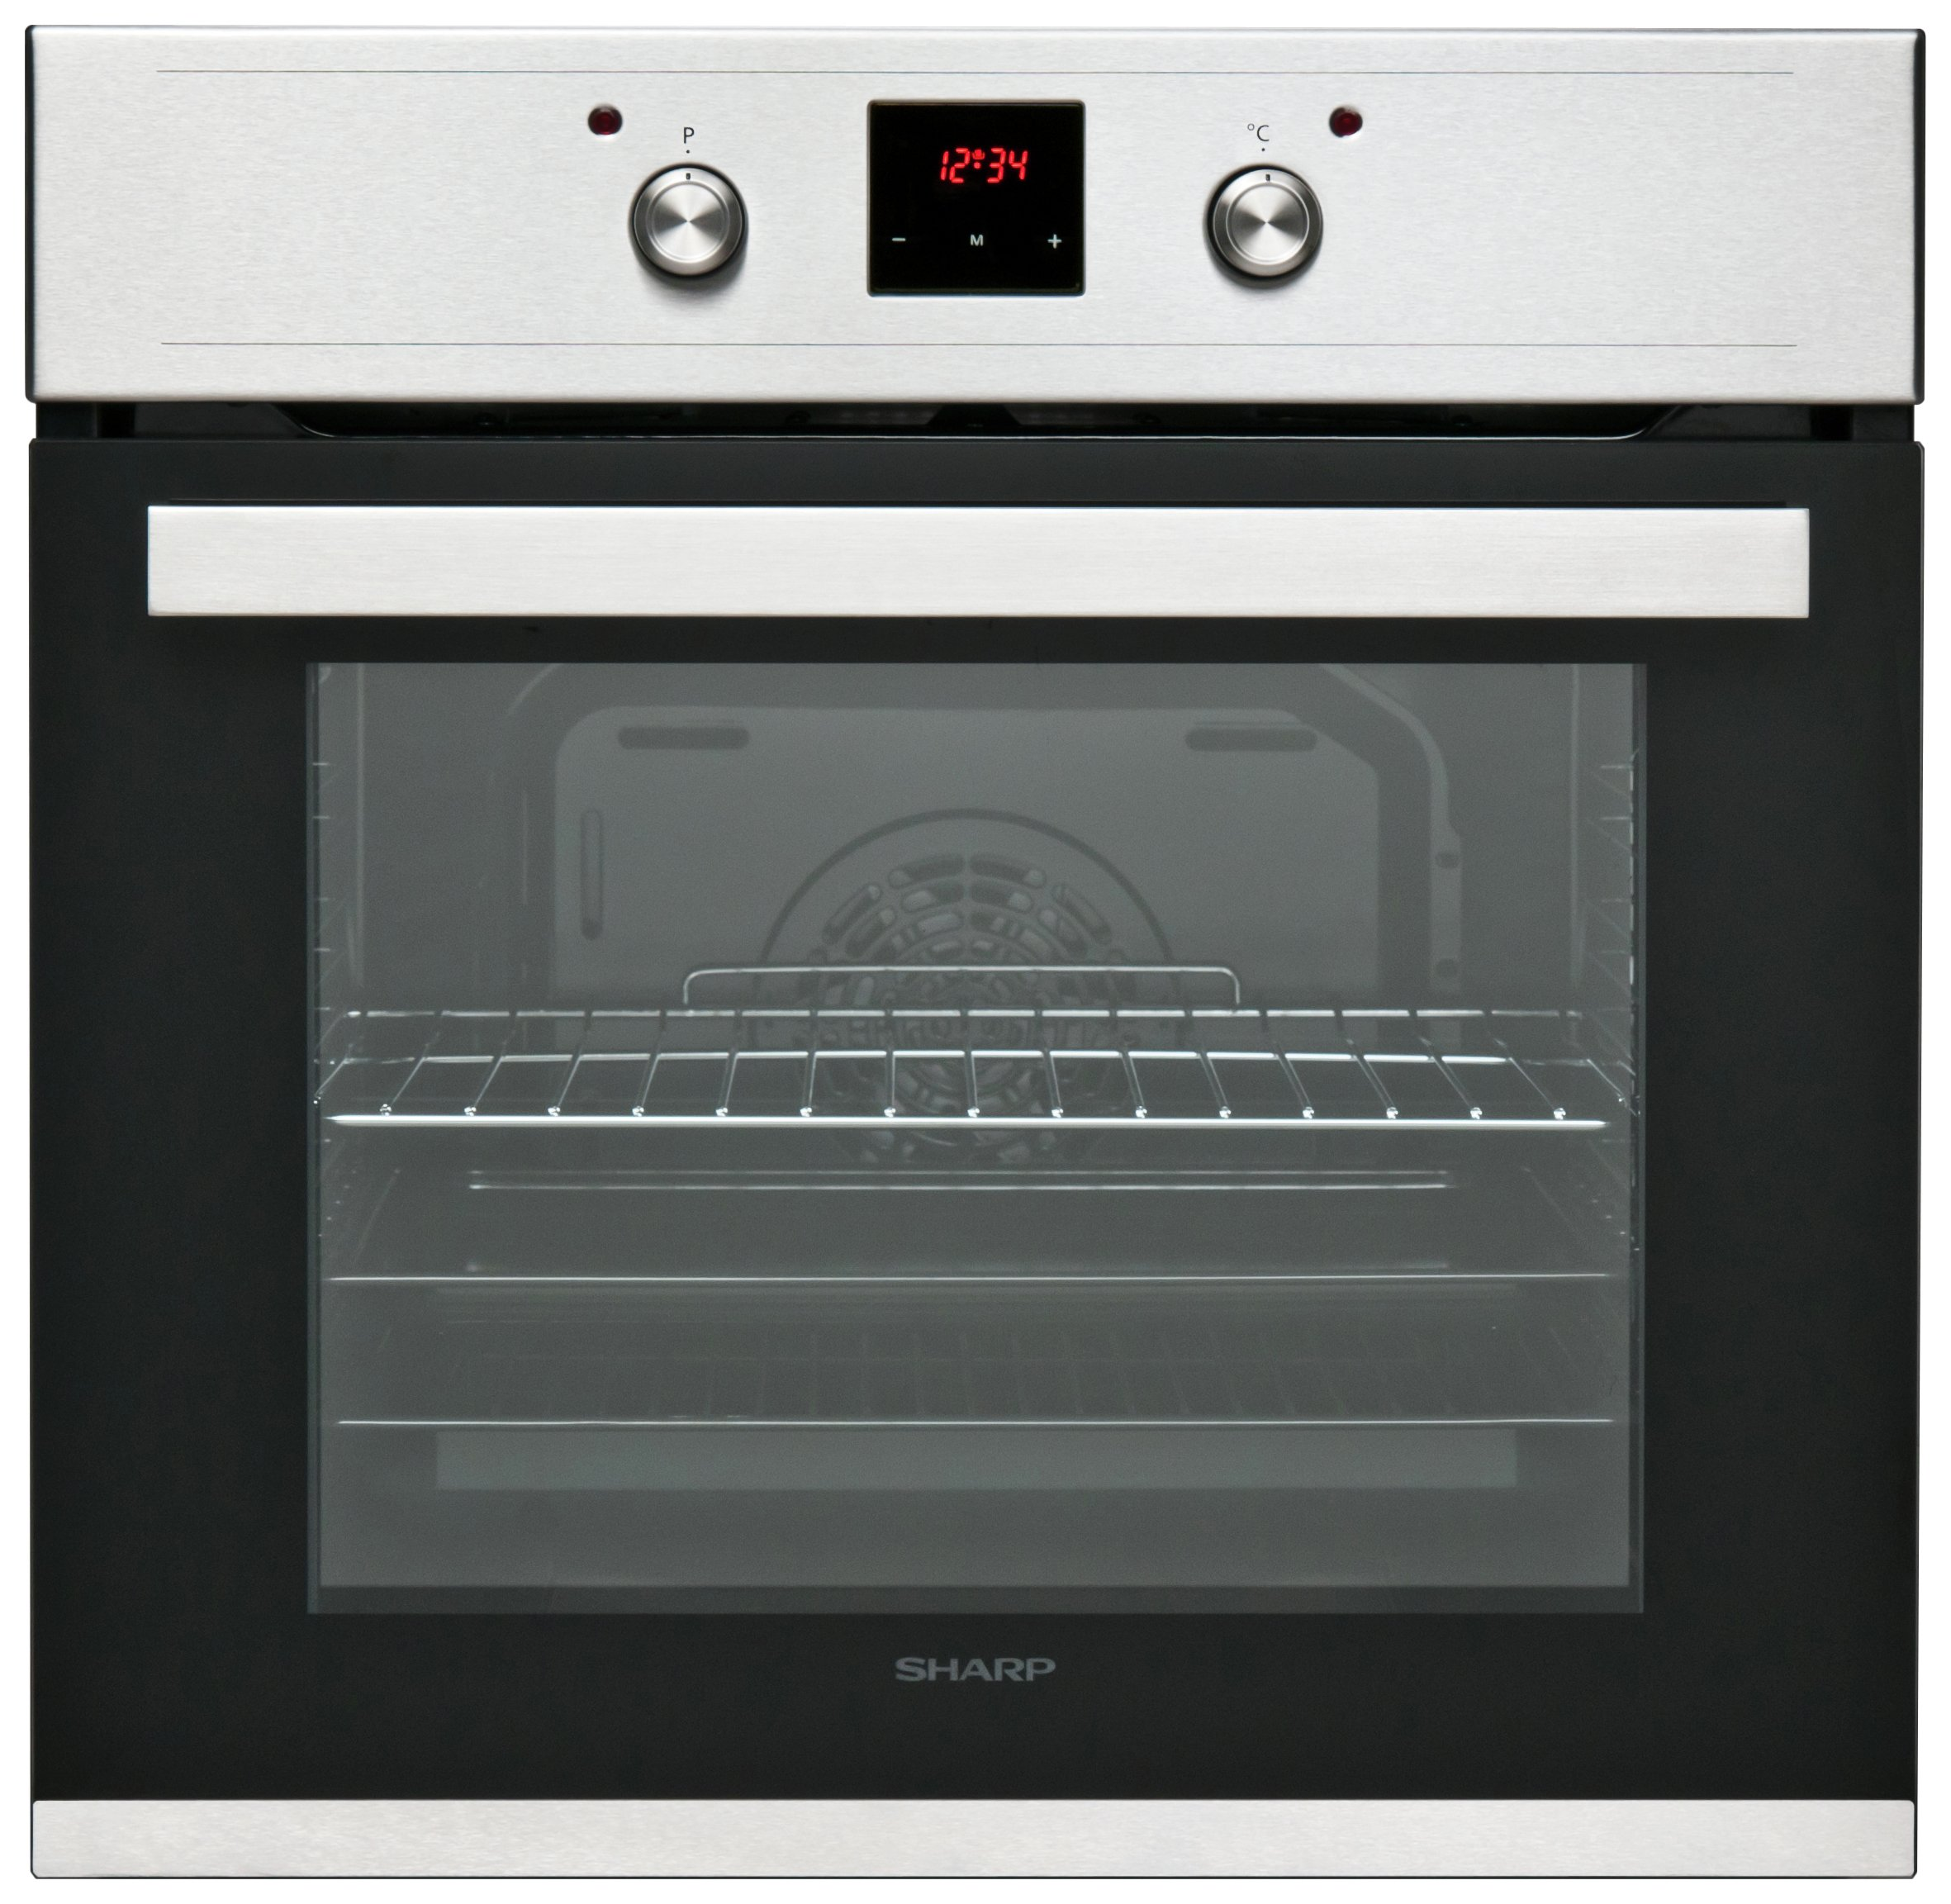 Sharp - K60D22IM1 - Single Electric Fan Oven - Stainless Steel